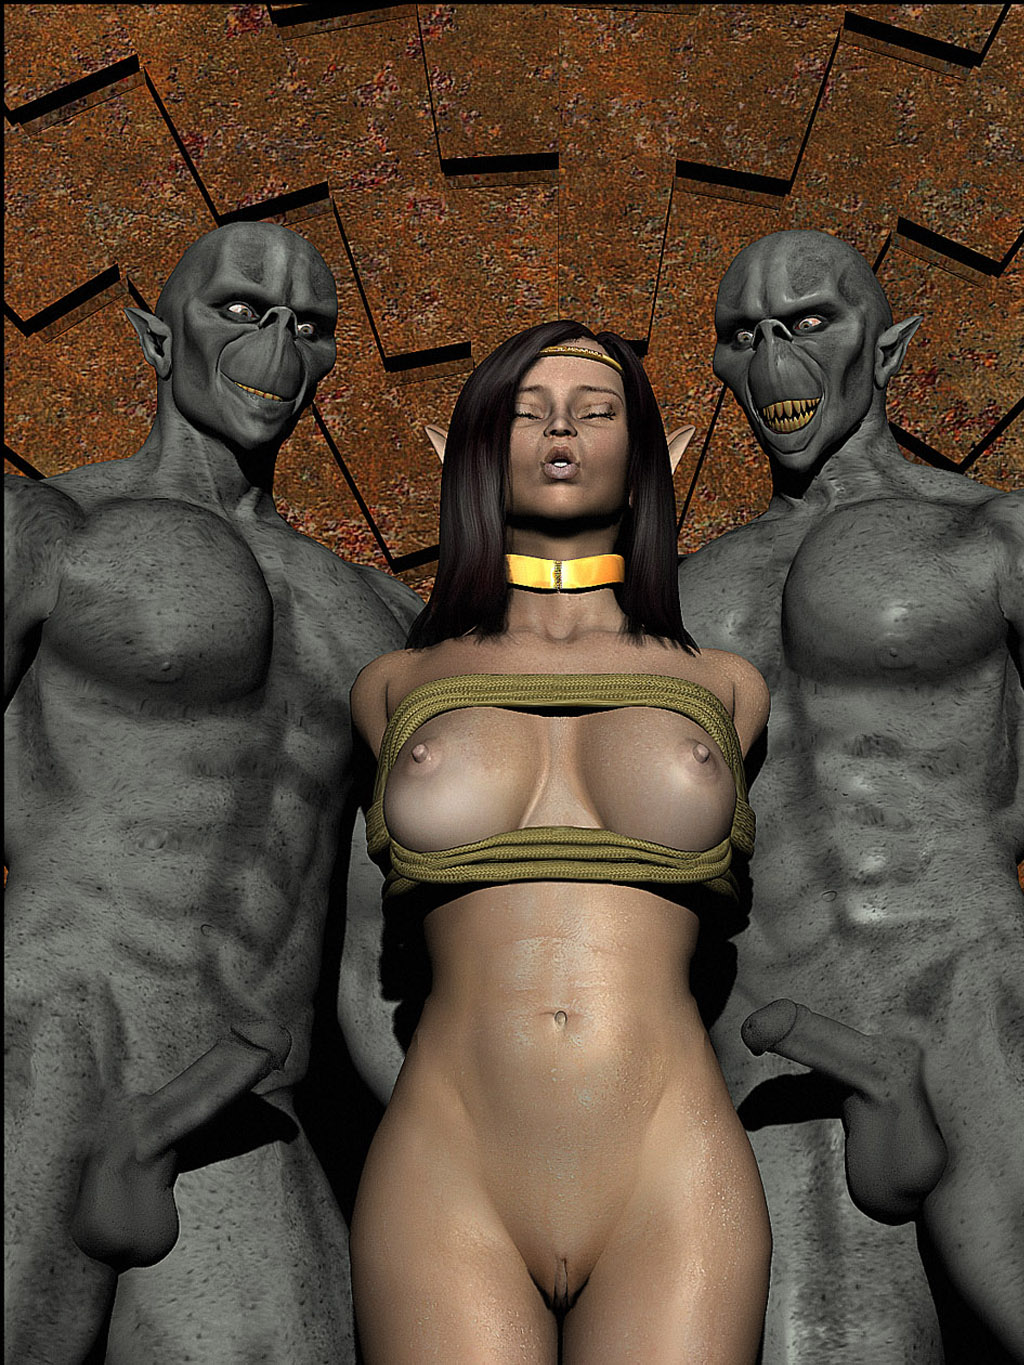 Naked elfes with aliens hentia image